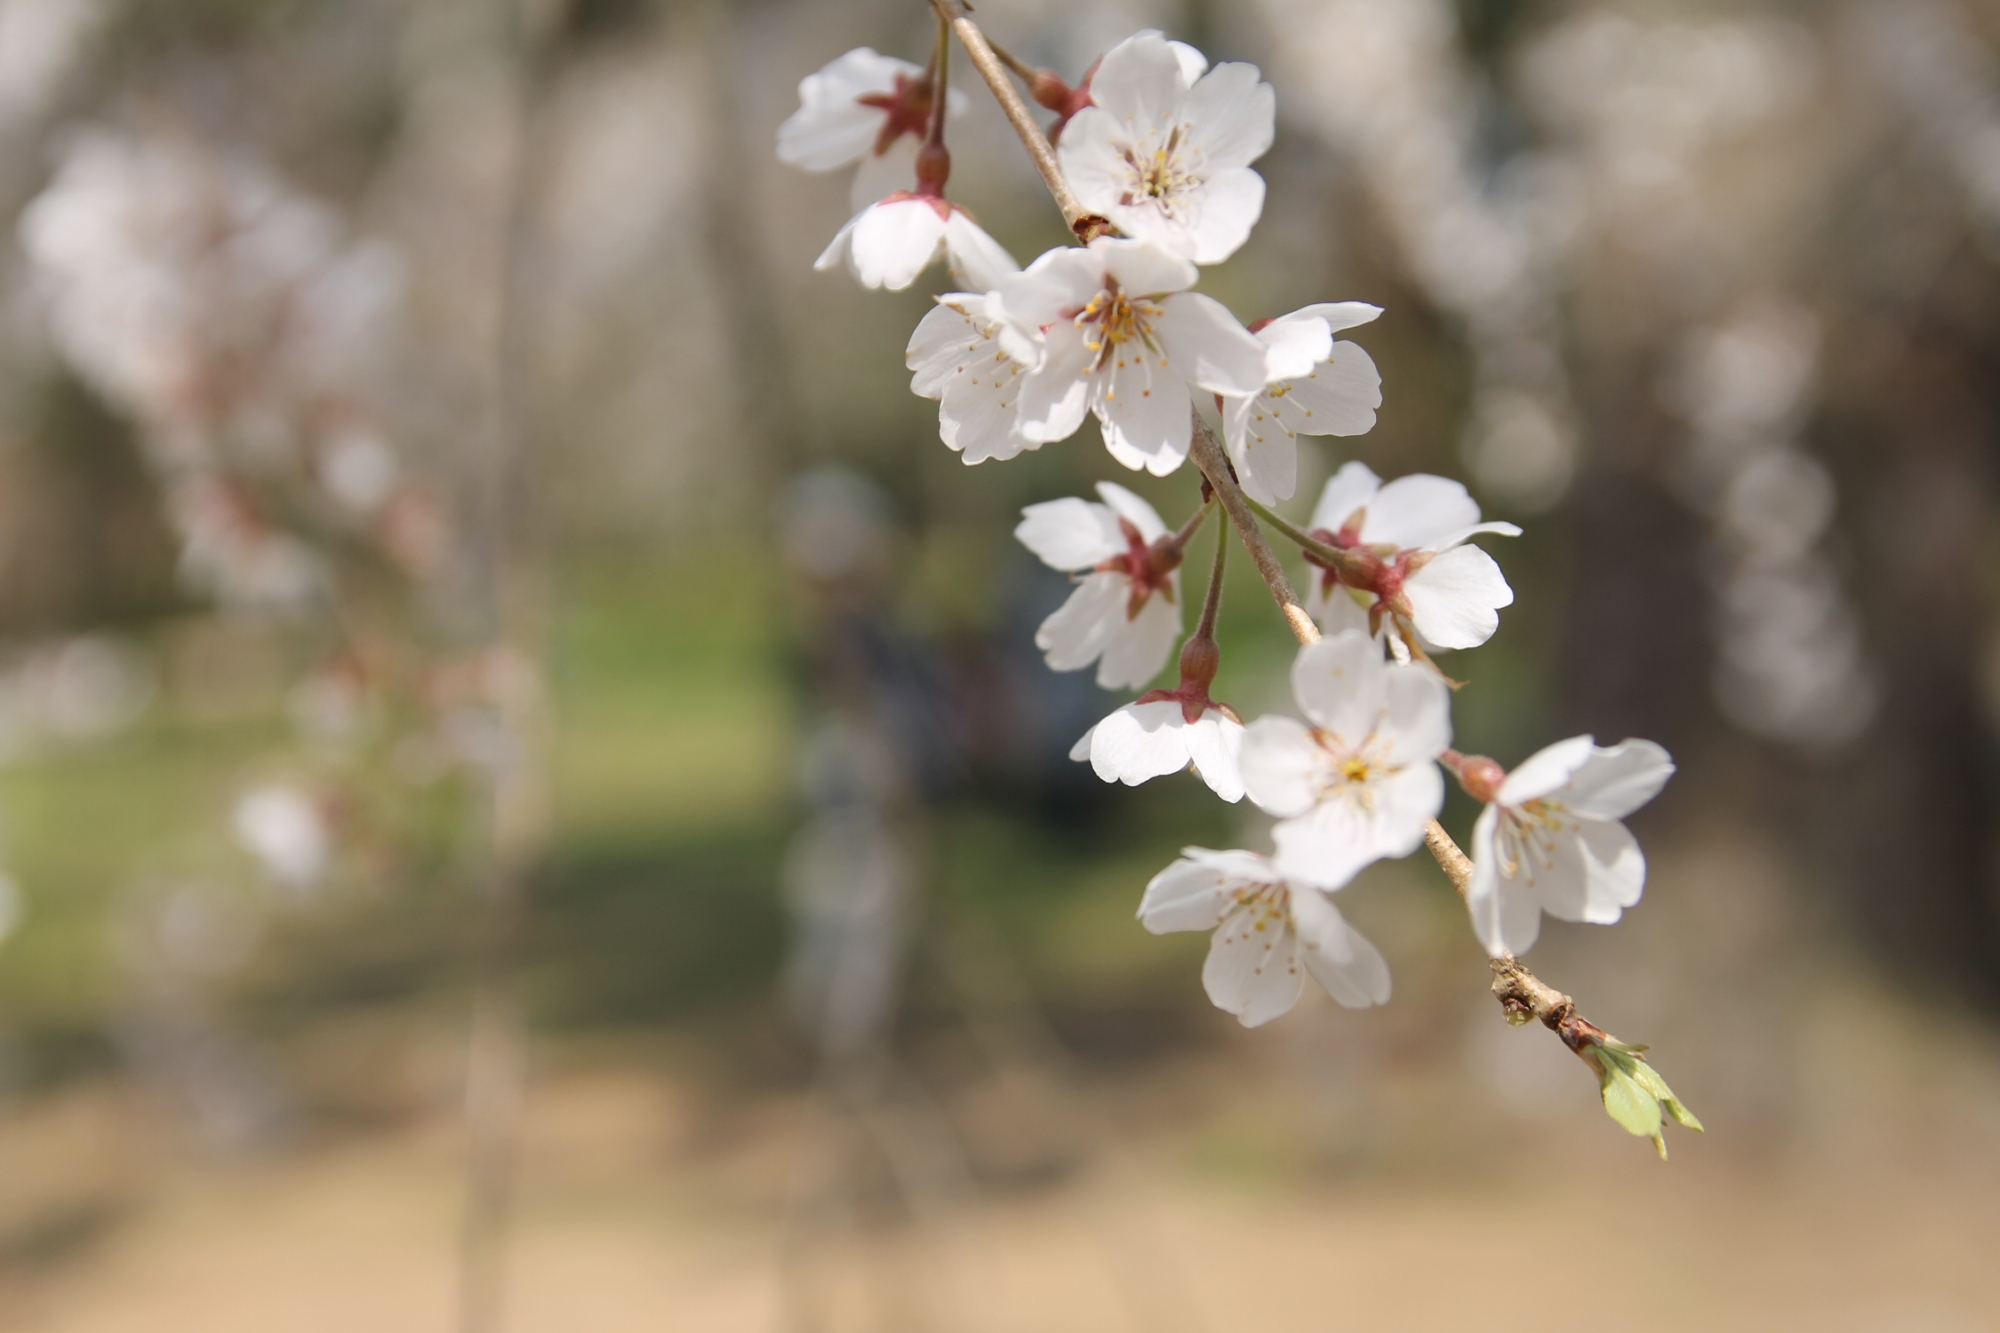 Leave of a Japanese Cherry Tree in full Blossom